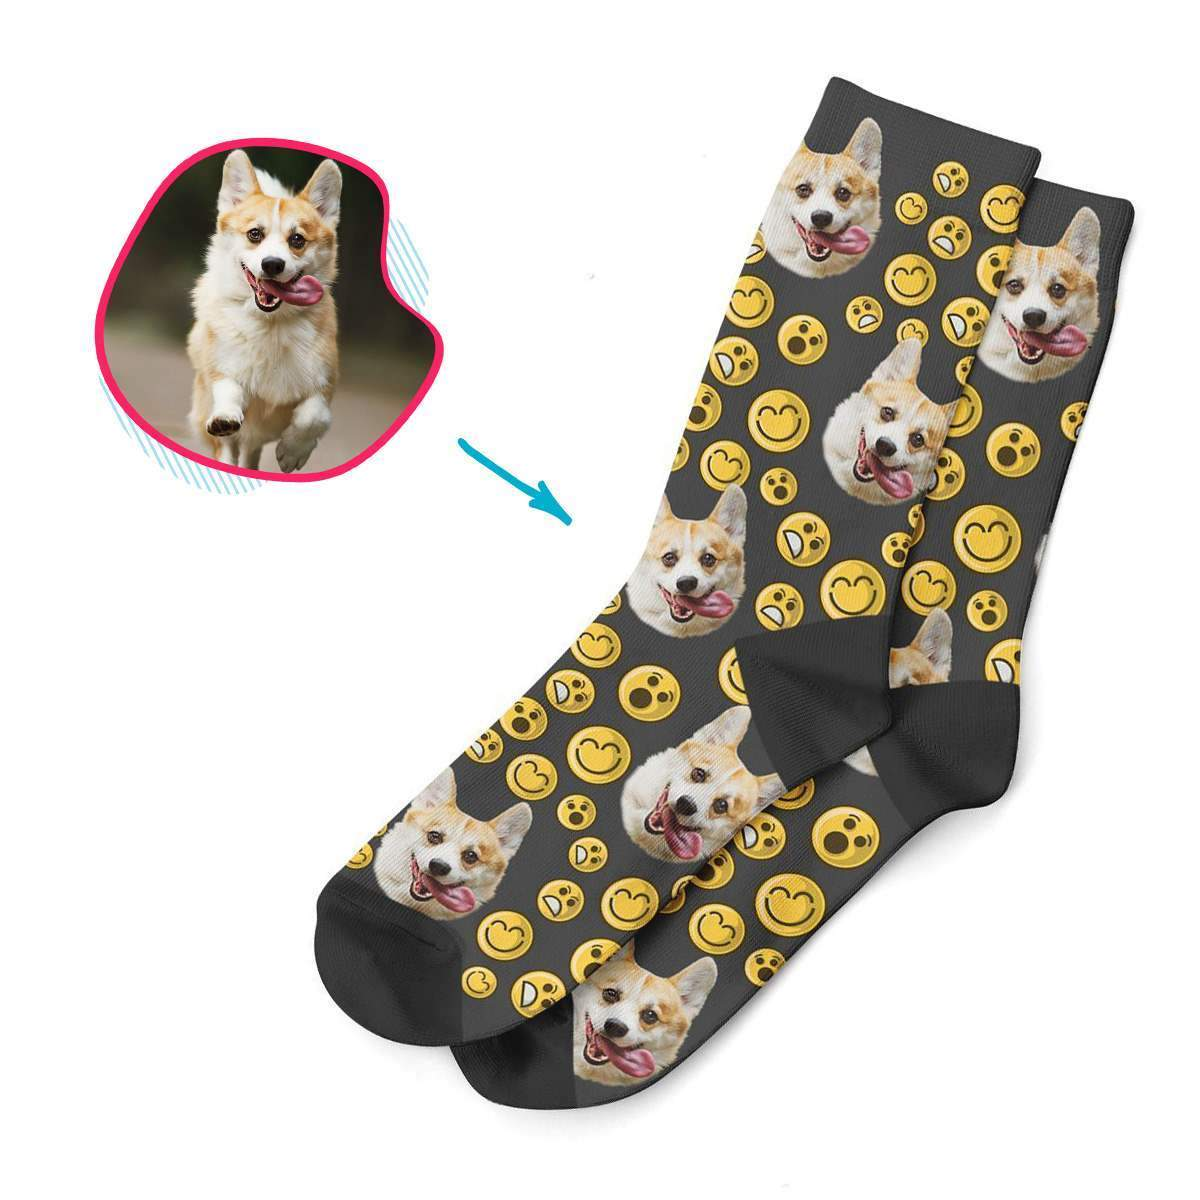 dark Smiles socks personalized with photo of face printed on them